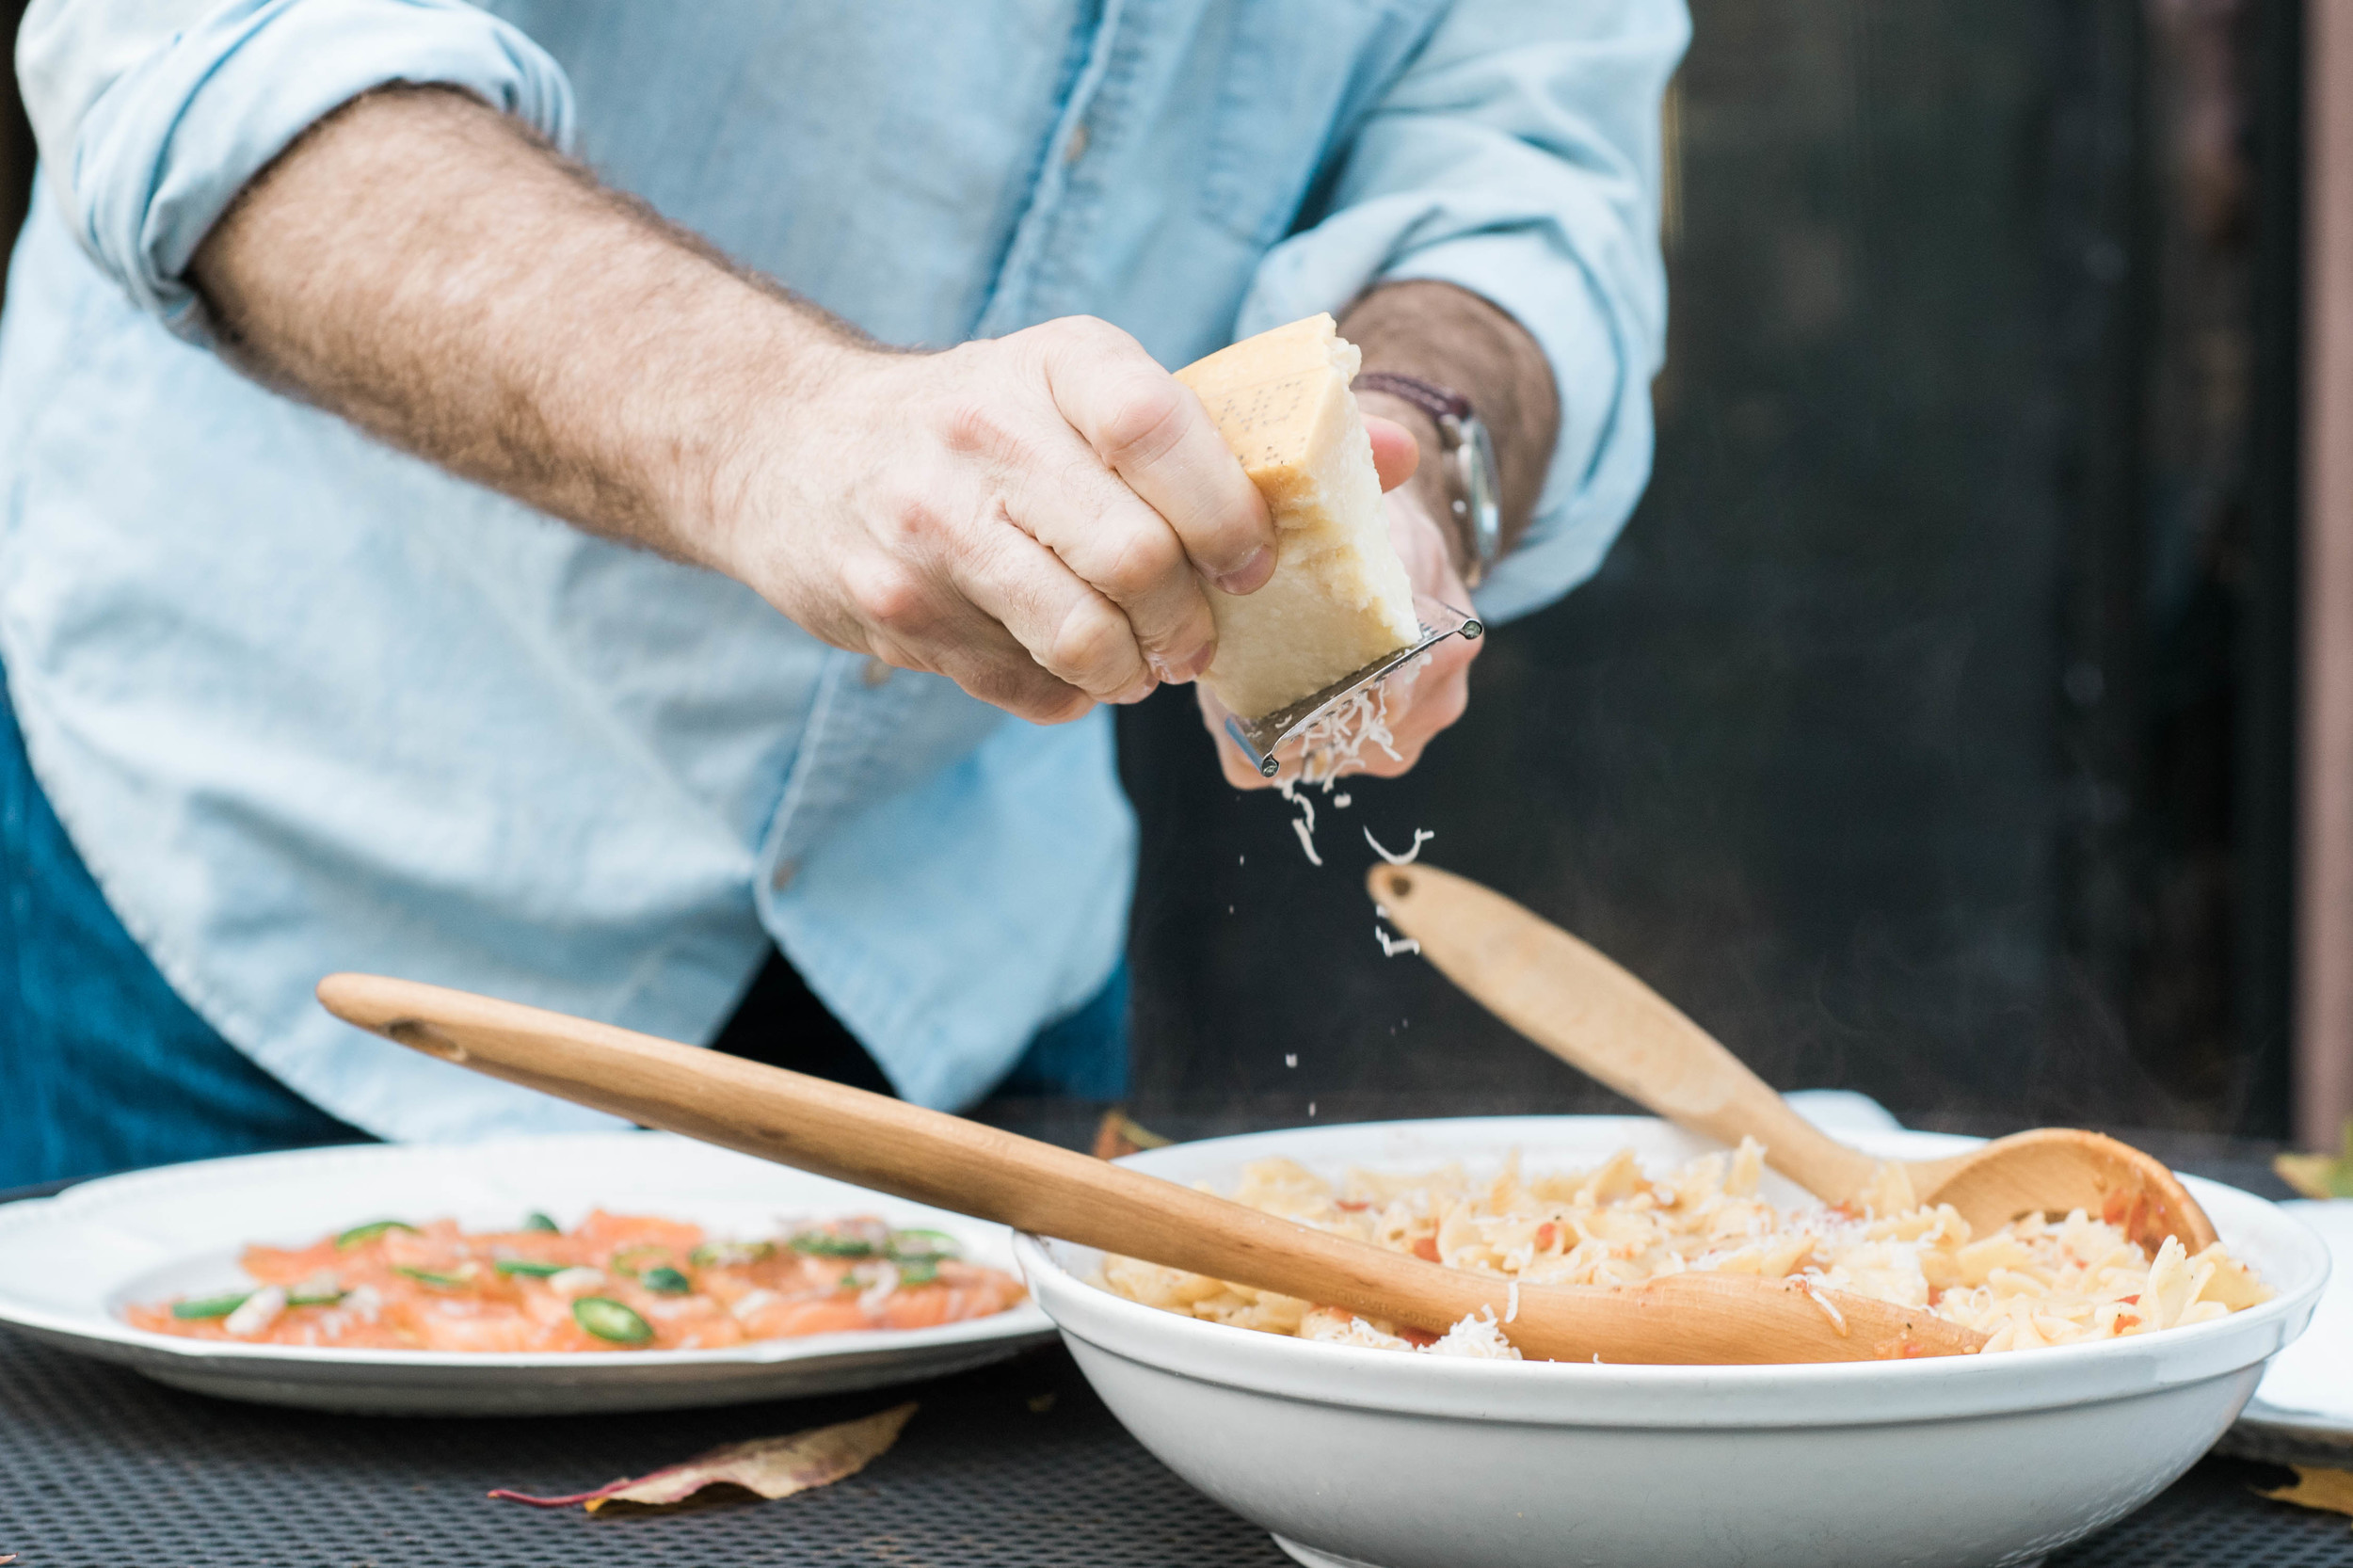 Doesn't that Parmesan falling just make your mouth water?!